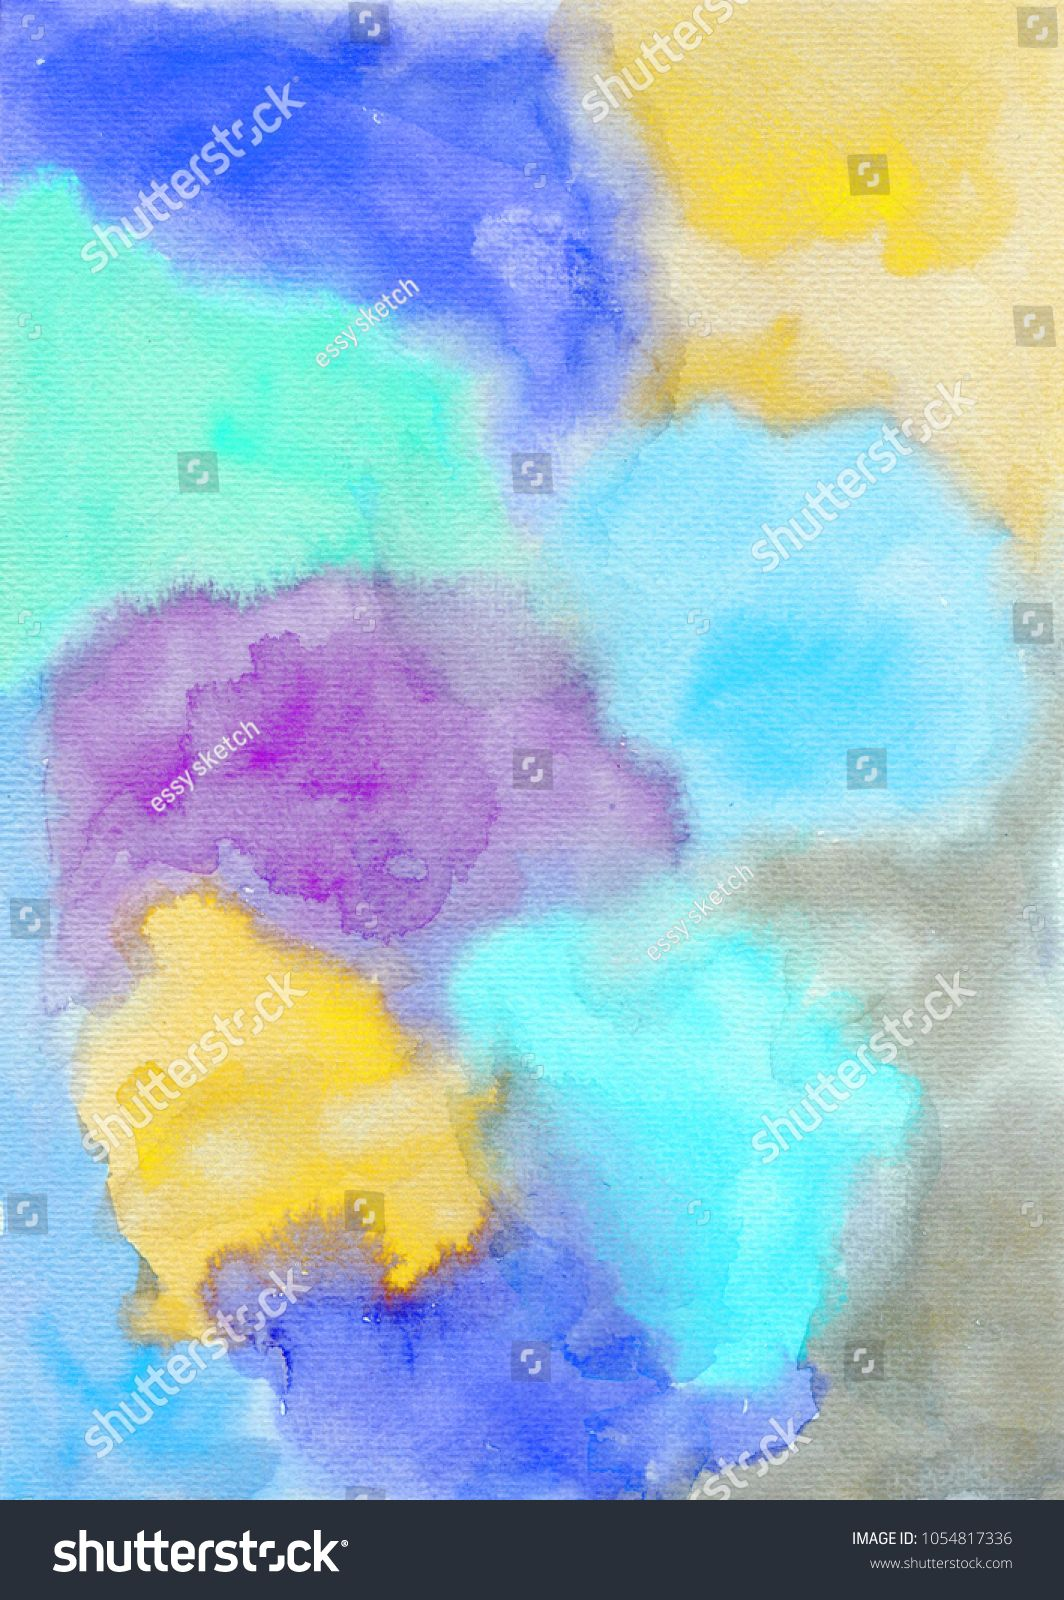 A Filter Texture Watercolor Blue Purple Yellow Abstract Art